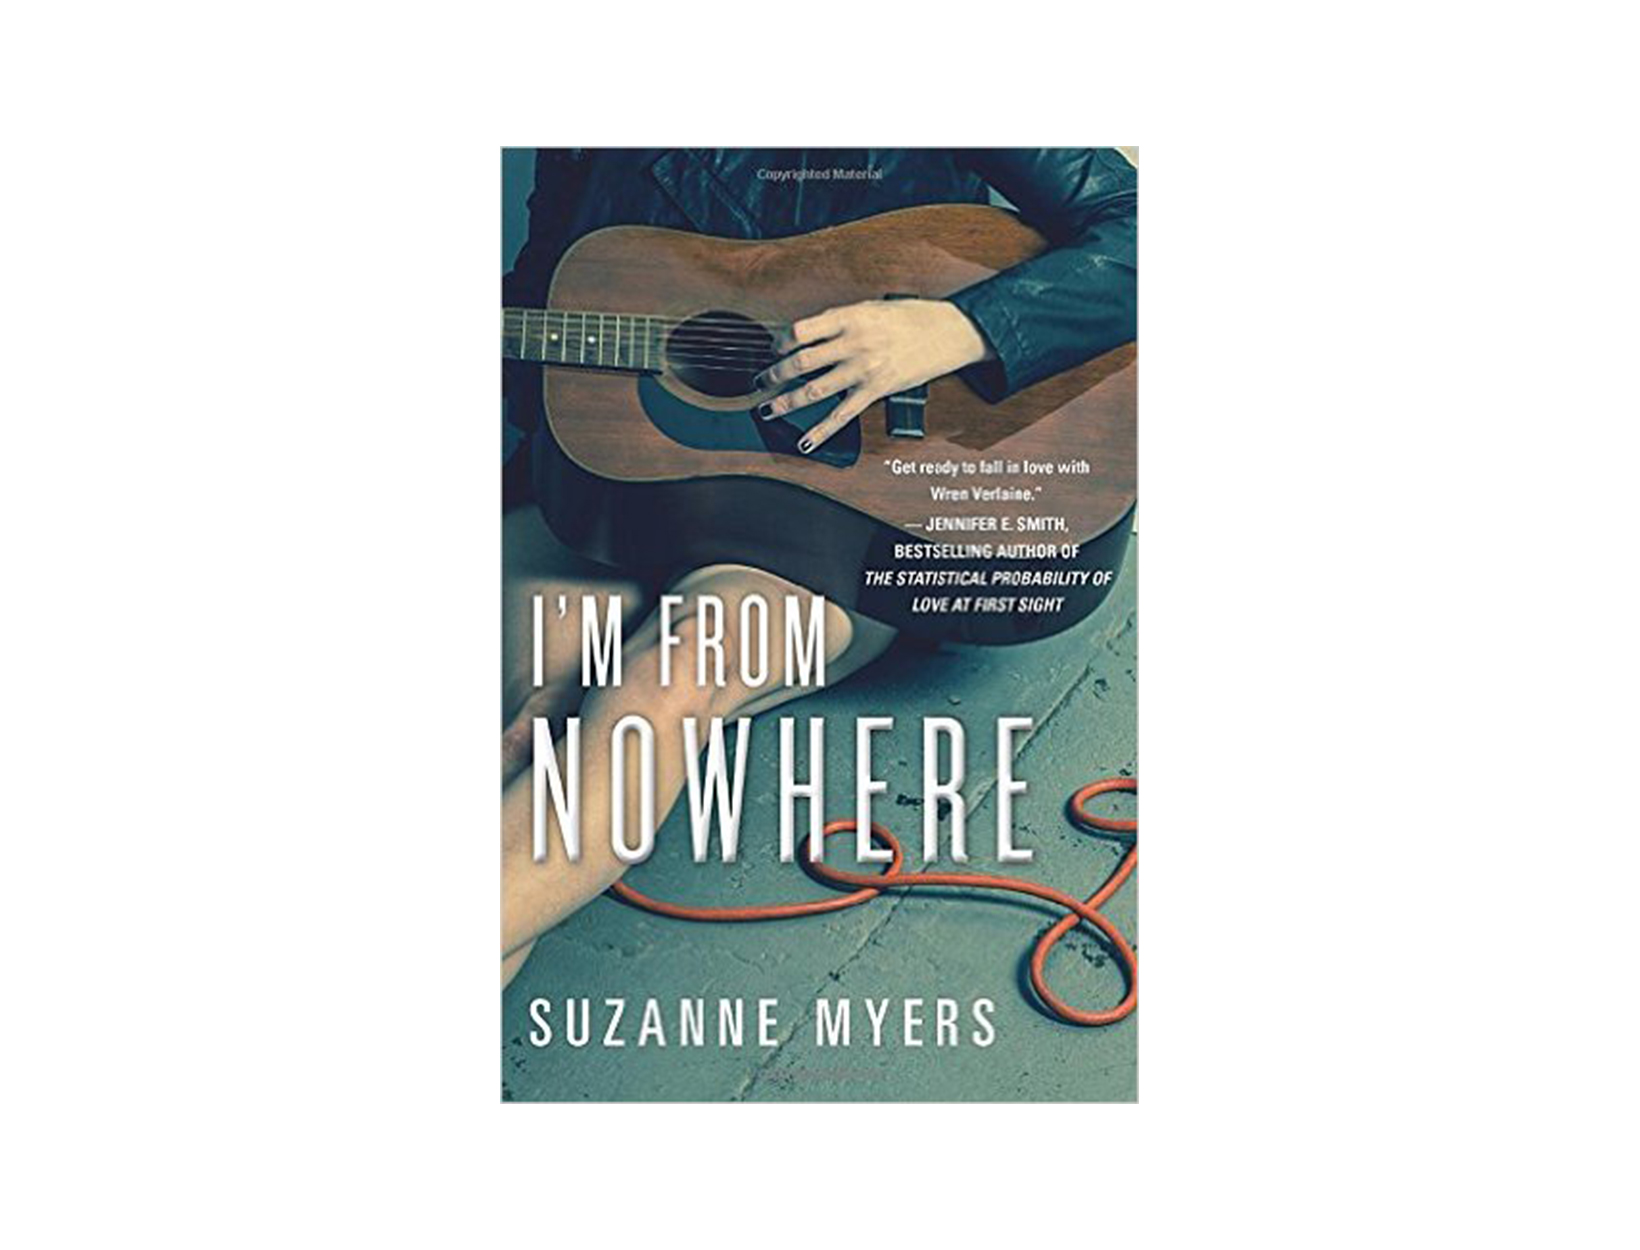 I'm from Nowhere by Suzanne Myers